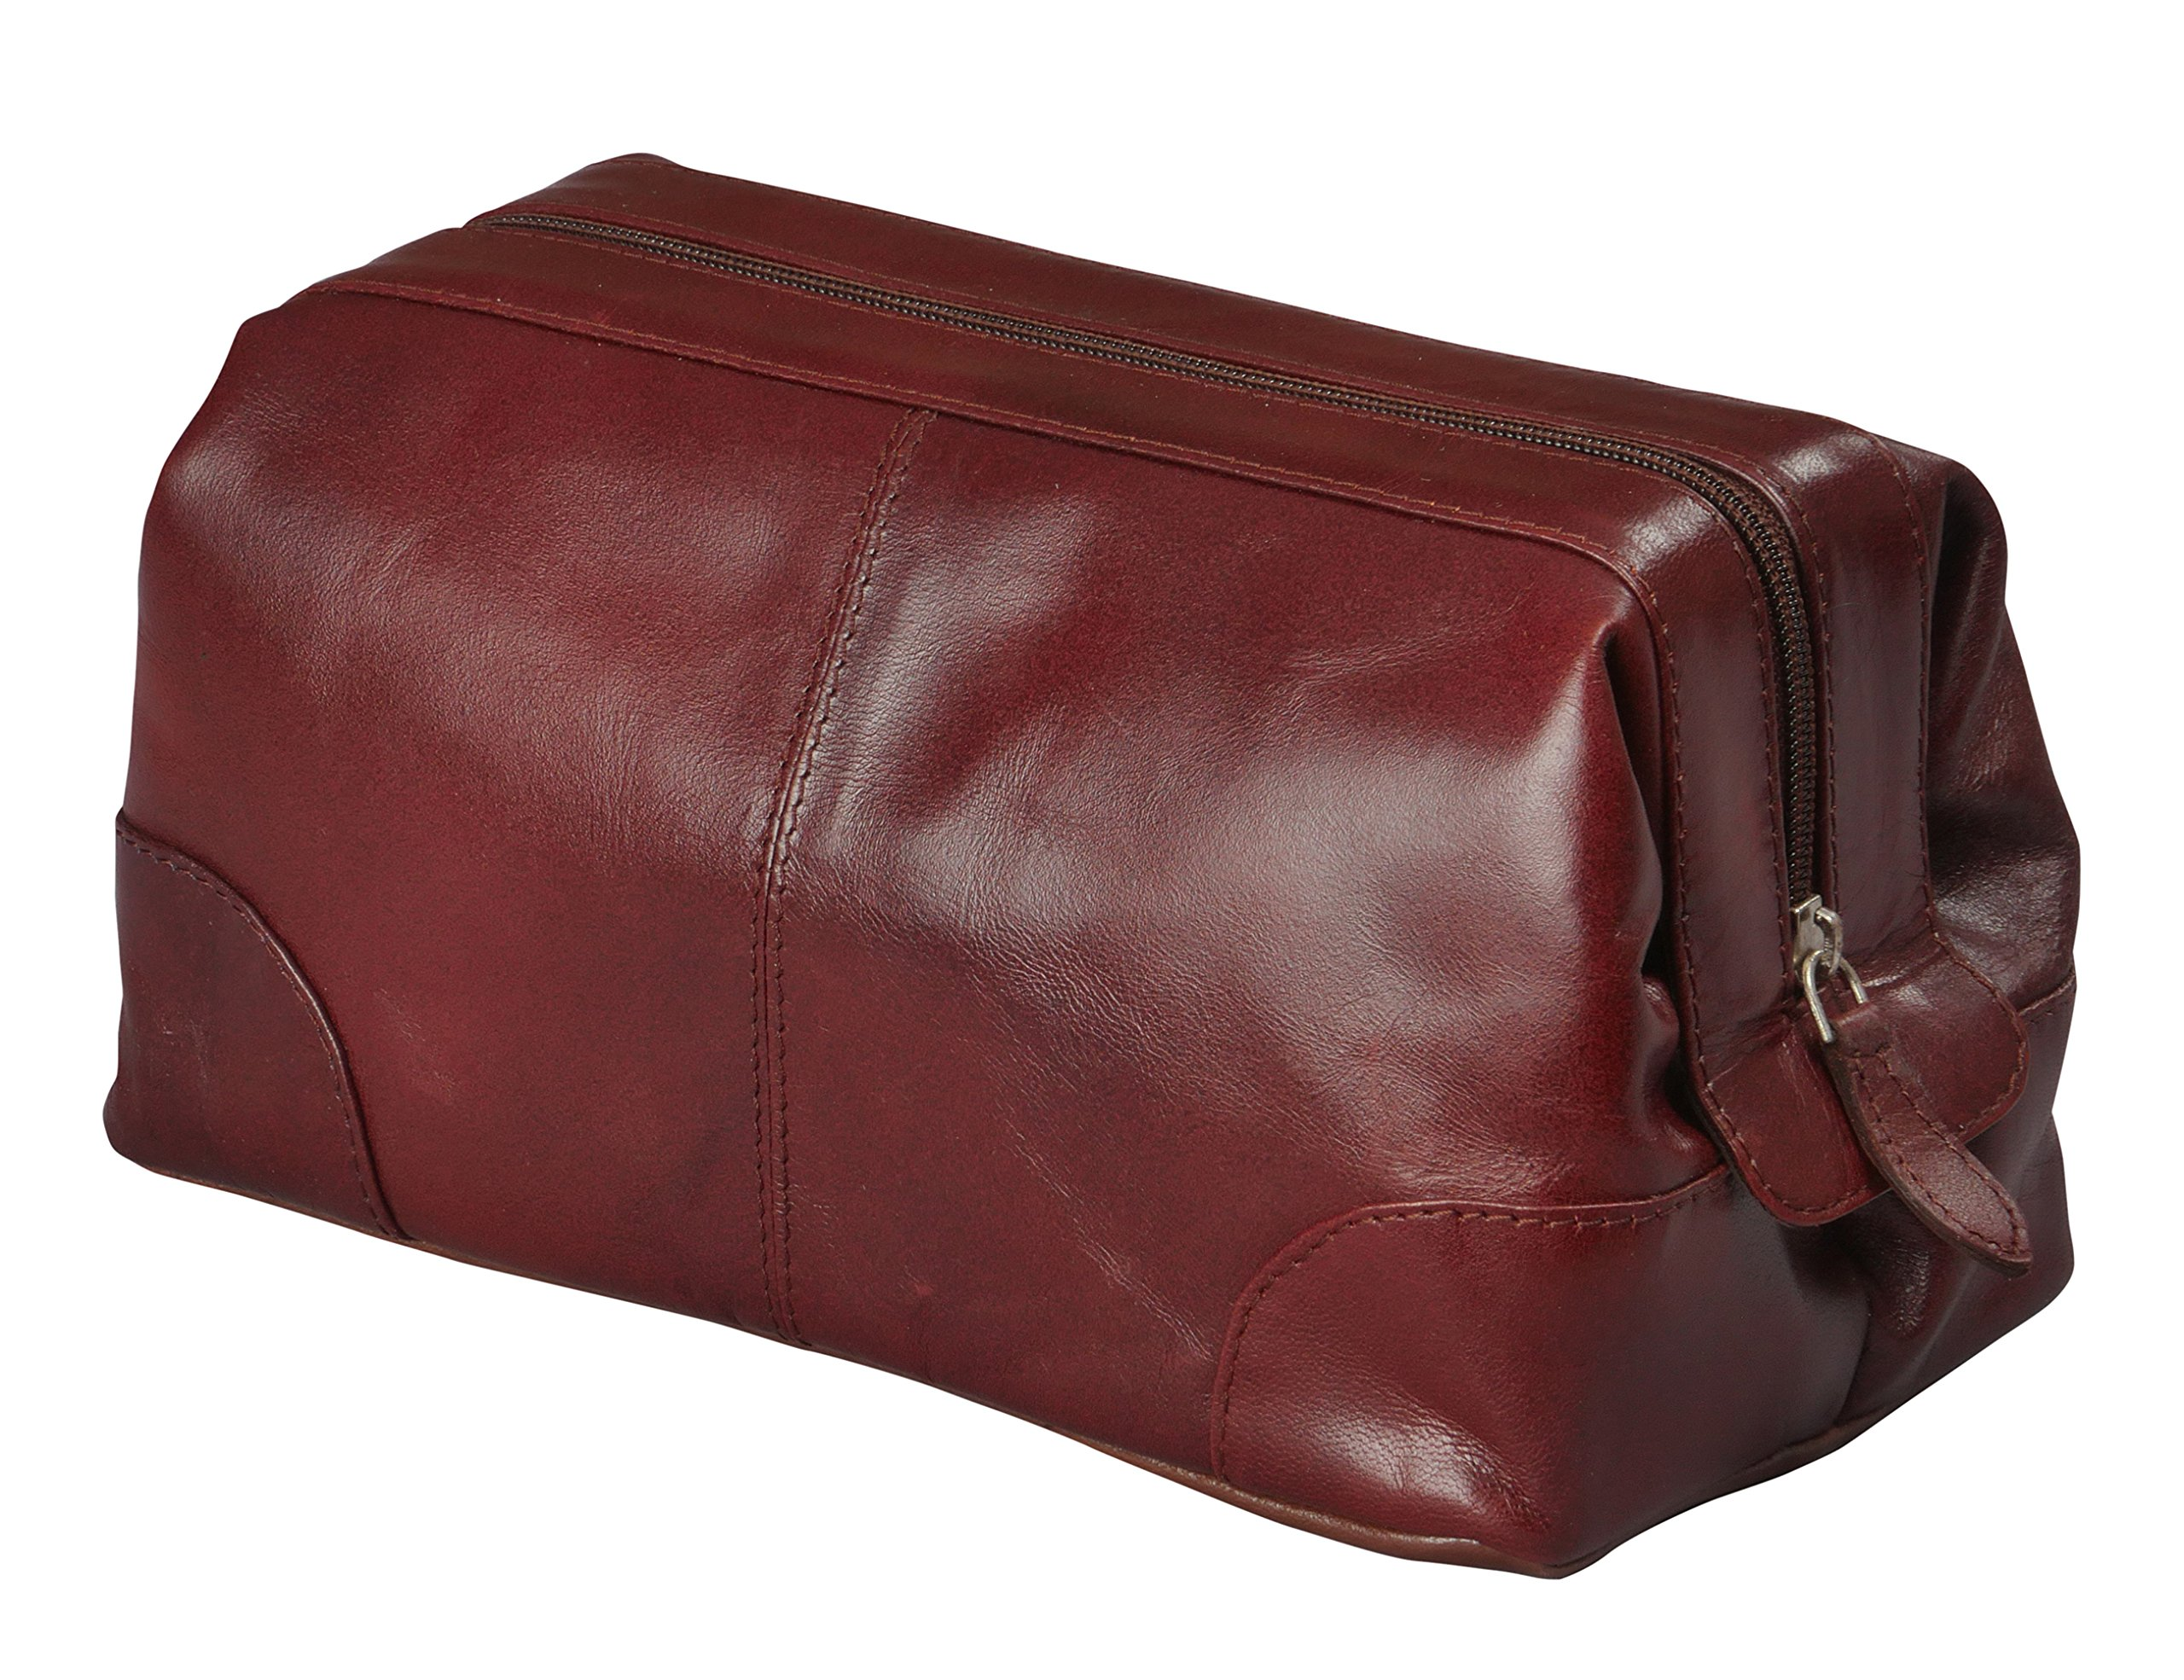 Mens Toiletry Bag Dopp Kit by Bayfield Bags-Small Compact Minimalist Glossy Leather Shaving Kit For Toiletry Travel Bag (10x5x5) (burgundy) Men's Toiletries Bag, Organizer Grooming Kit For Men by Bayfield Bags